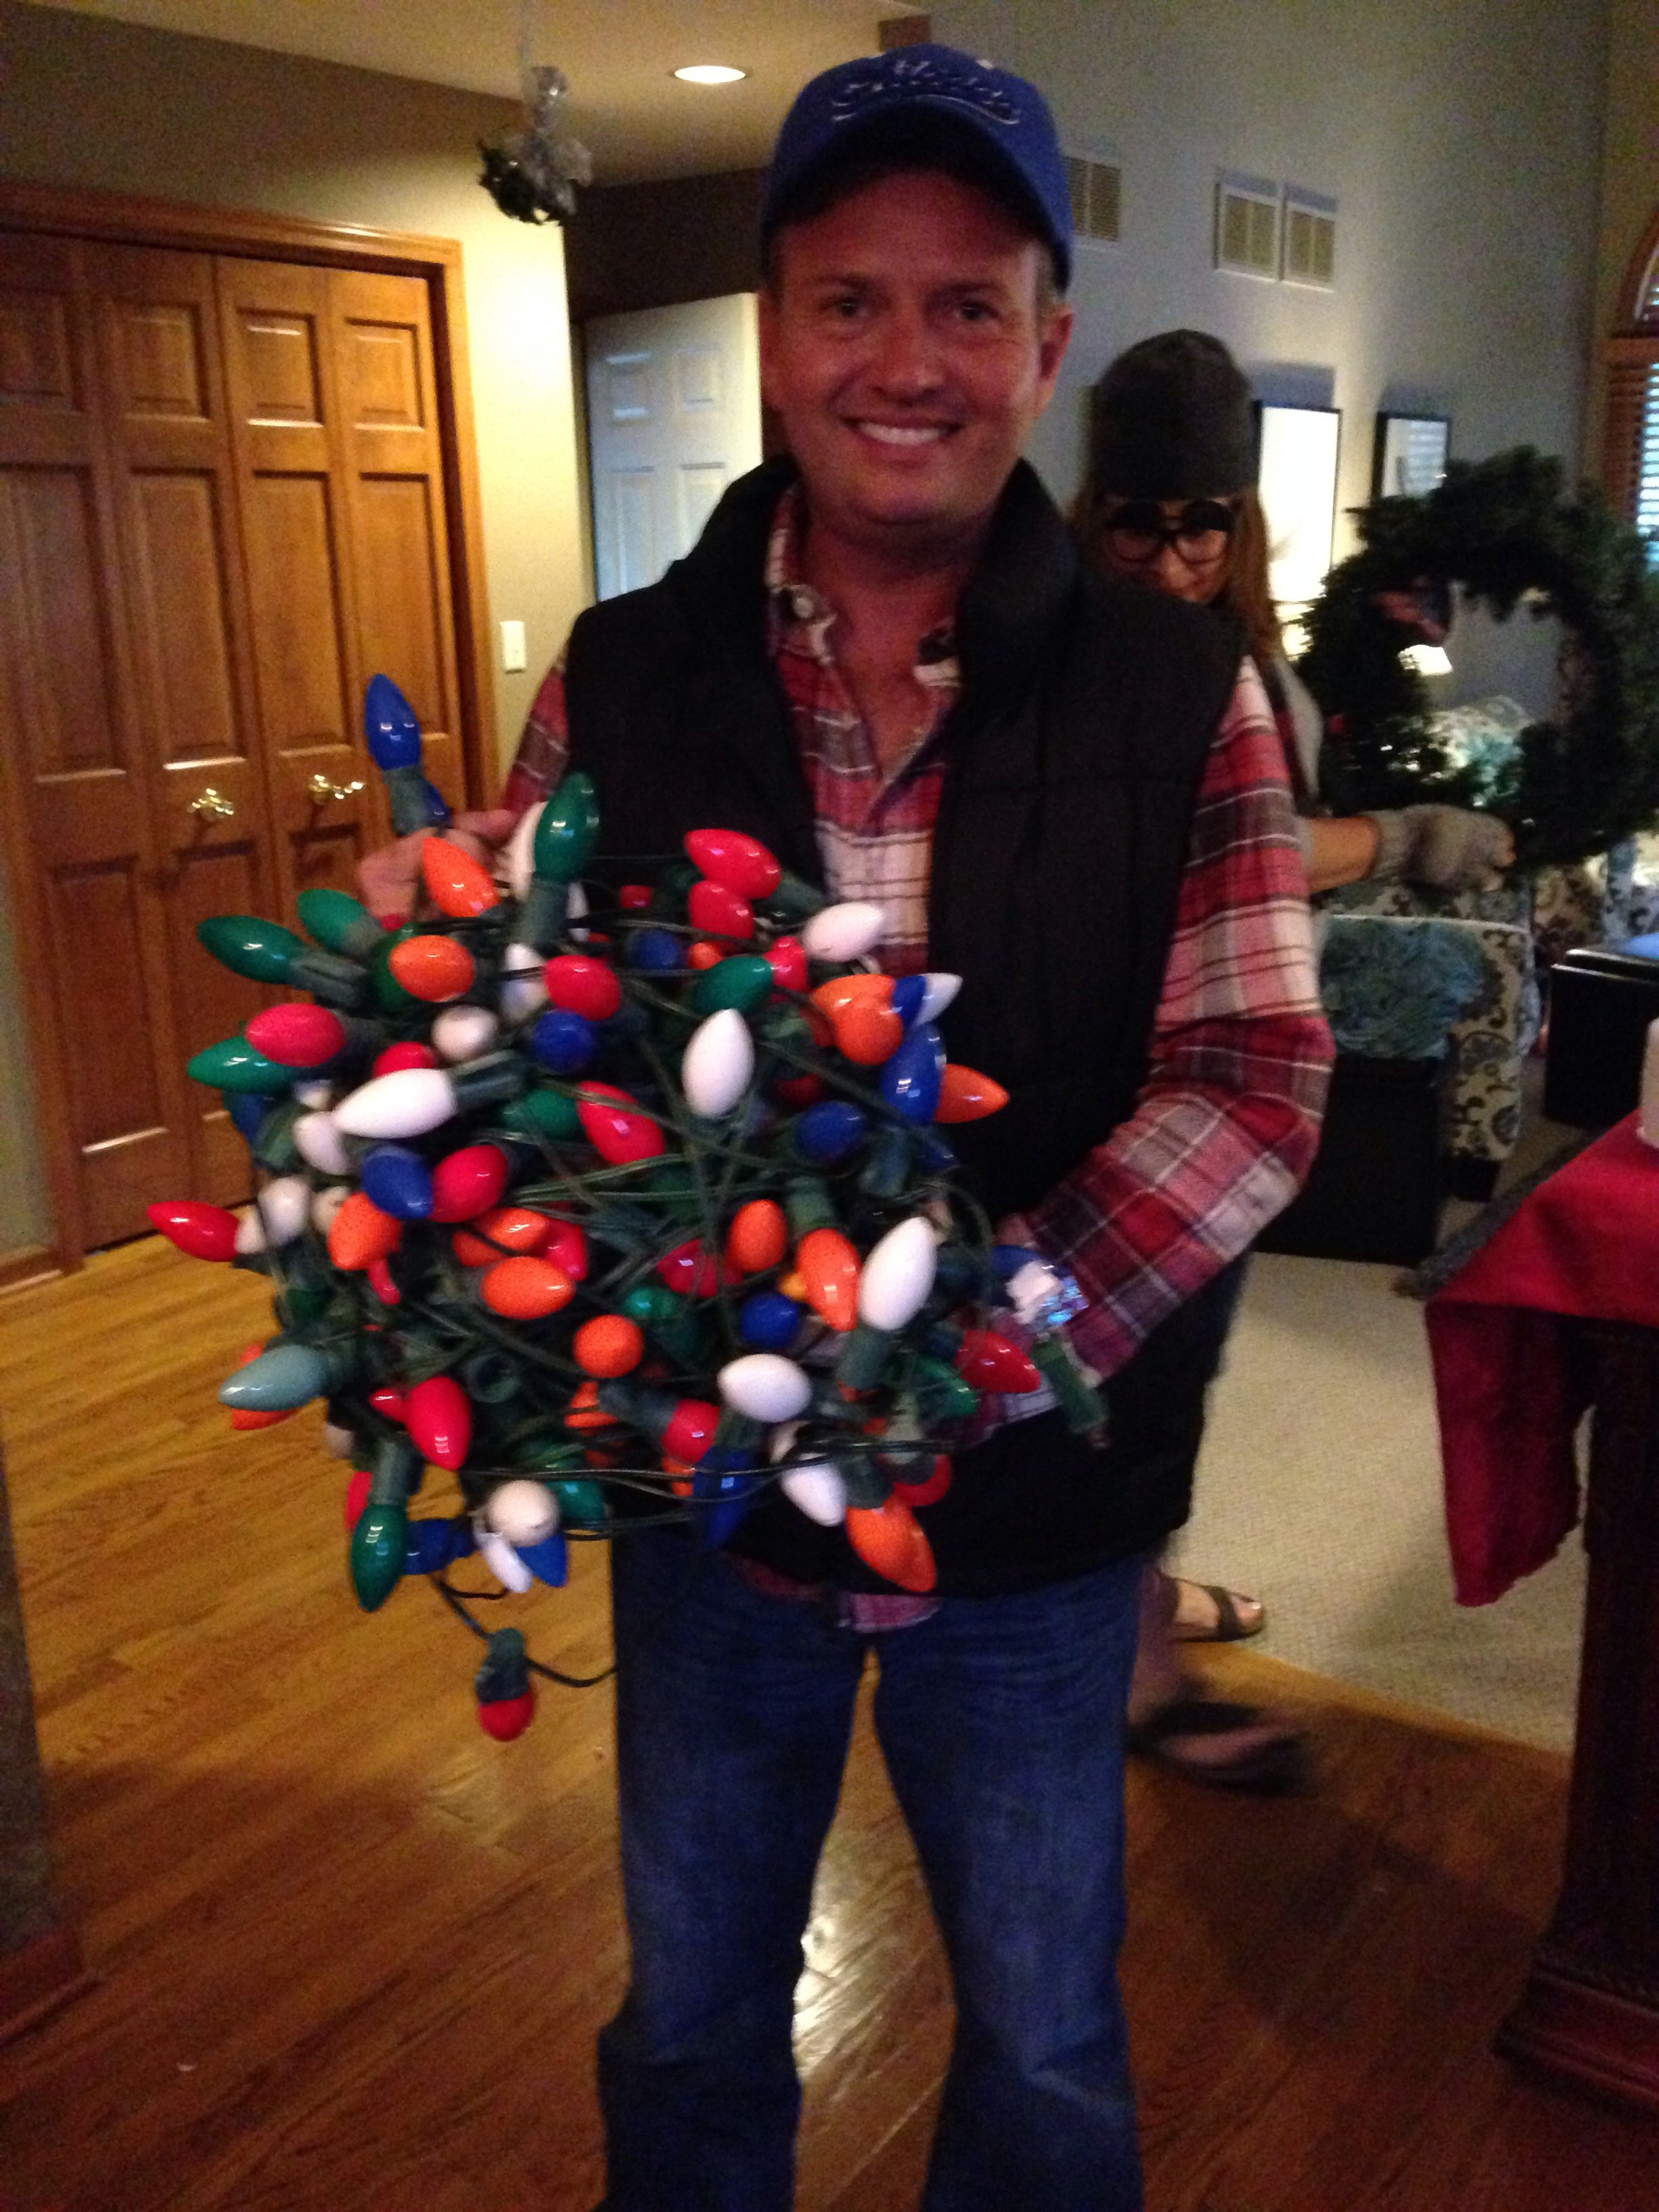 Griswold Christmas.Clark Griswold Christmas Vacation Party Costume Idea For